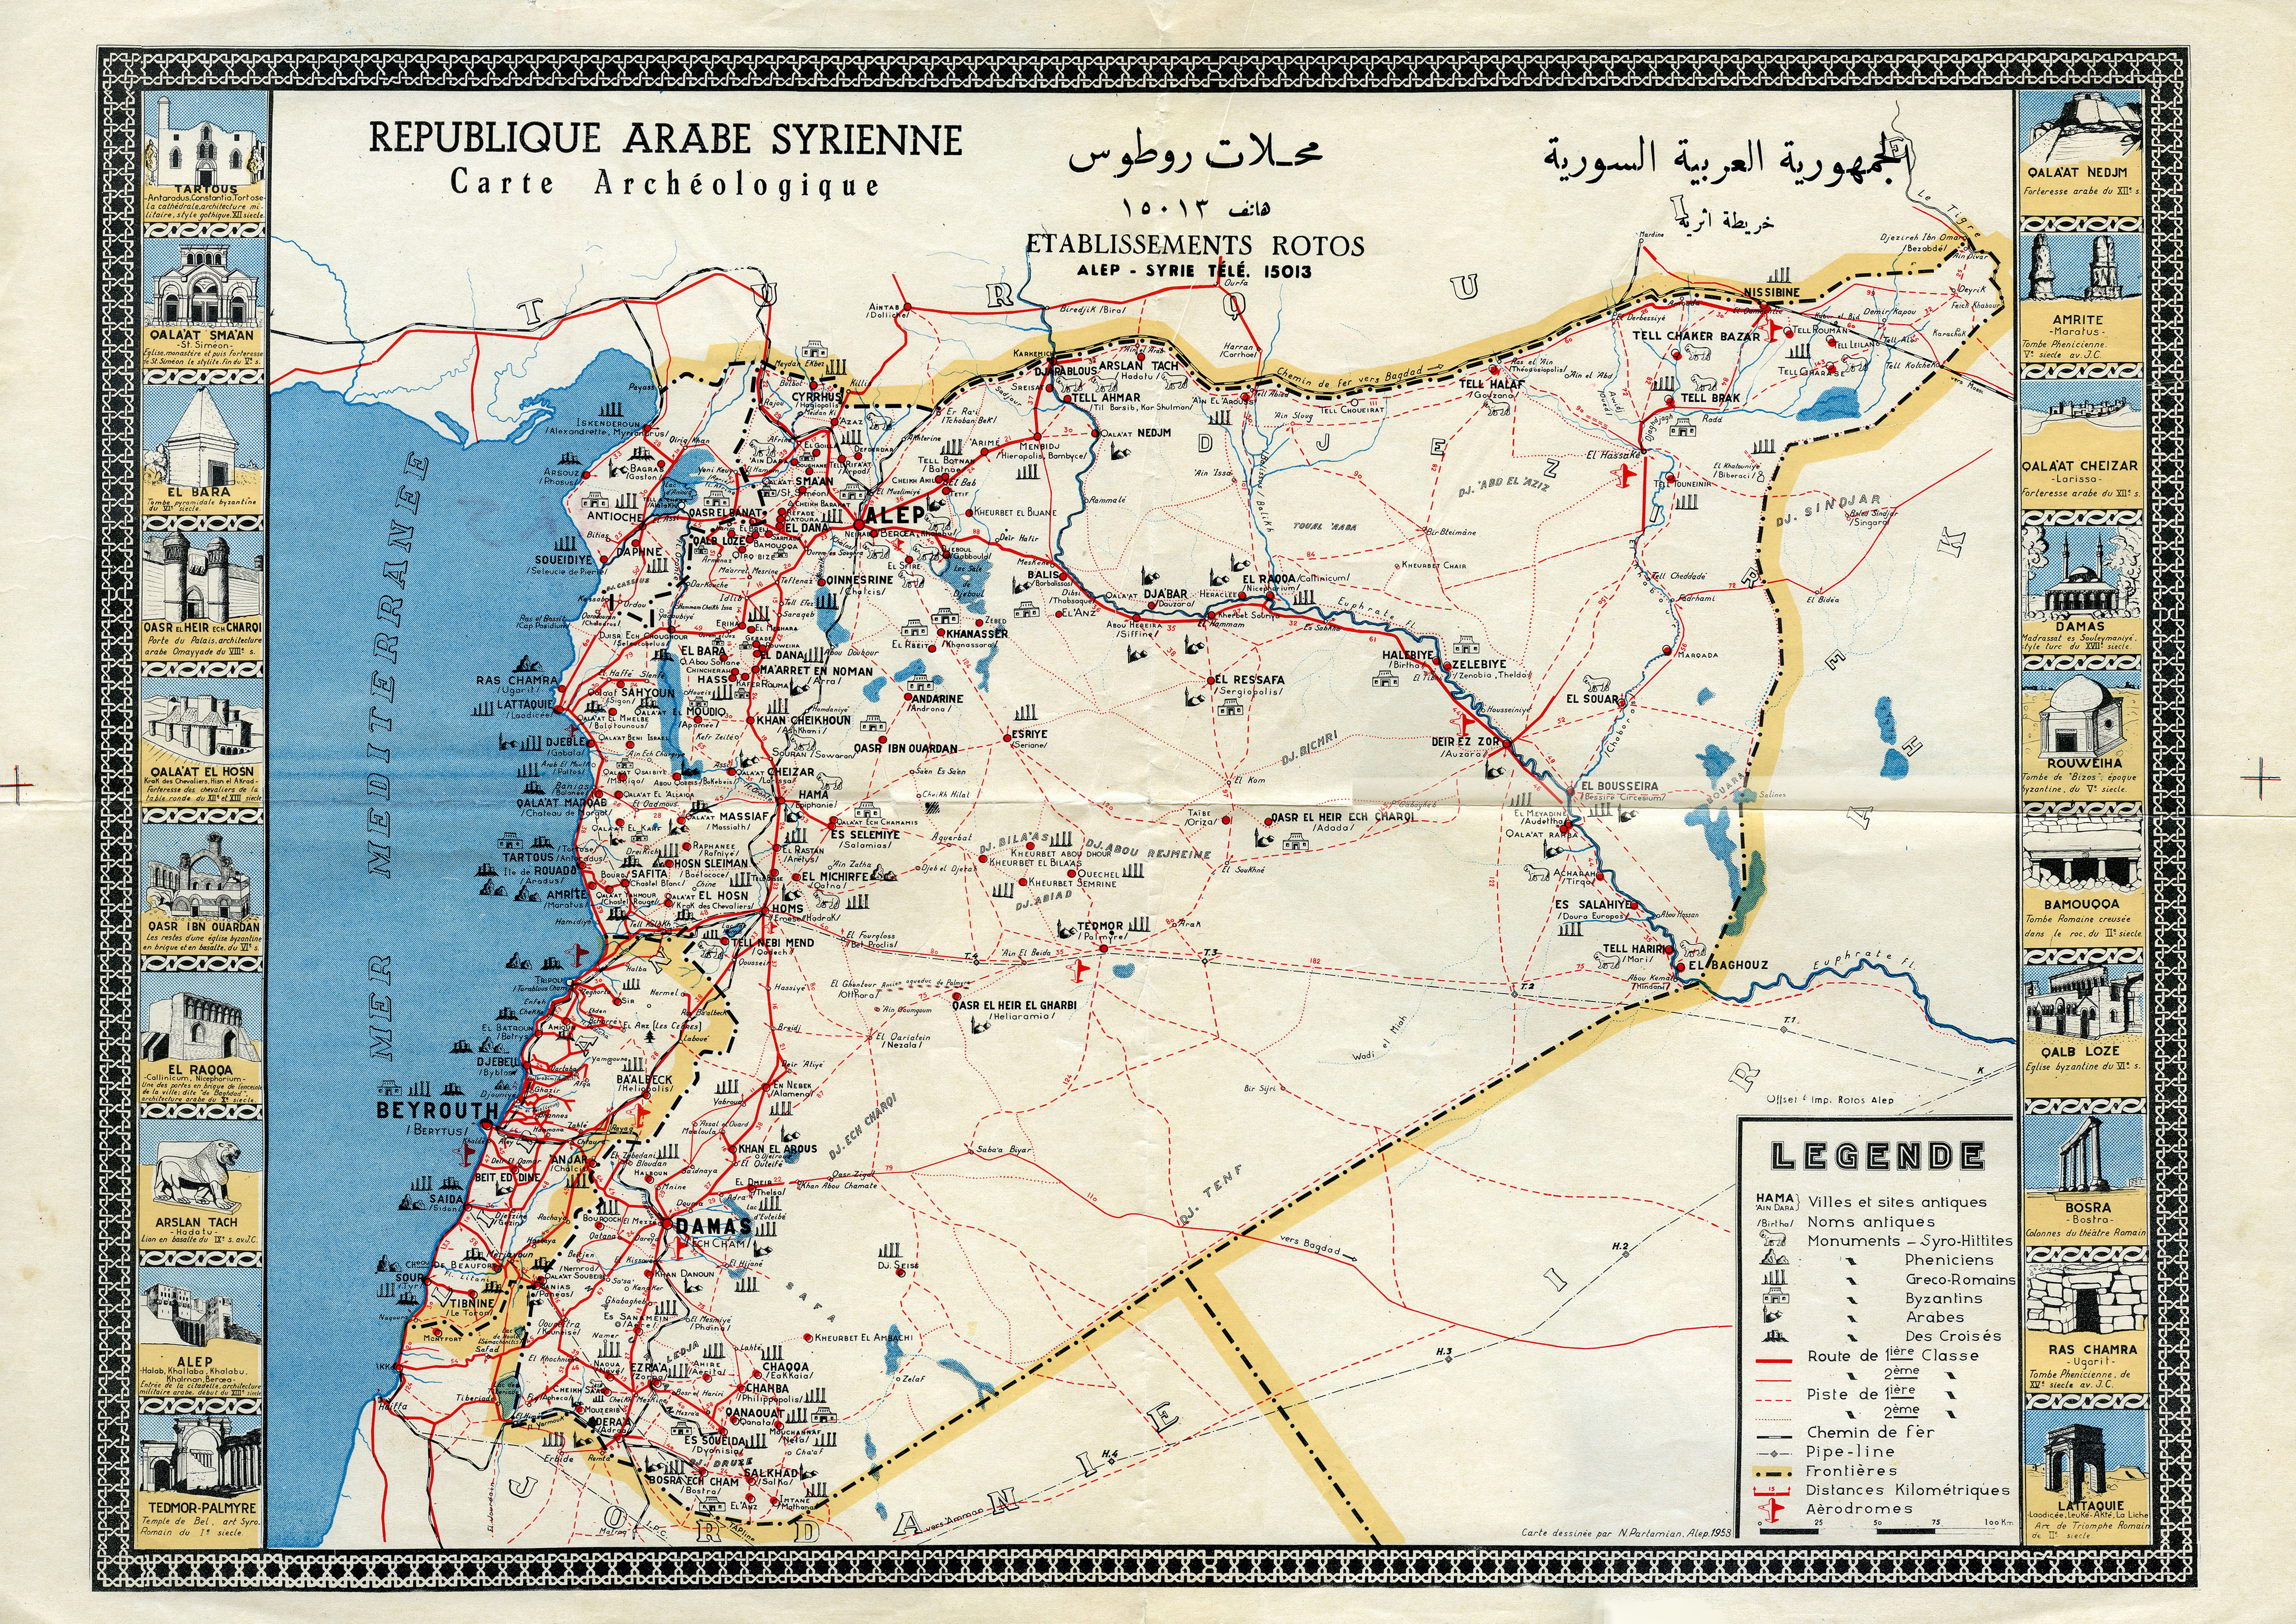 Map of Syria drawn by N. Partamian in 1953, showing Banias in the Golan and Antioch within Syrian borders (Diana Darke, own copy)